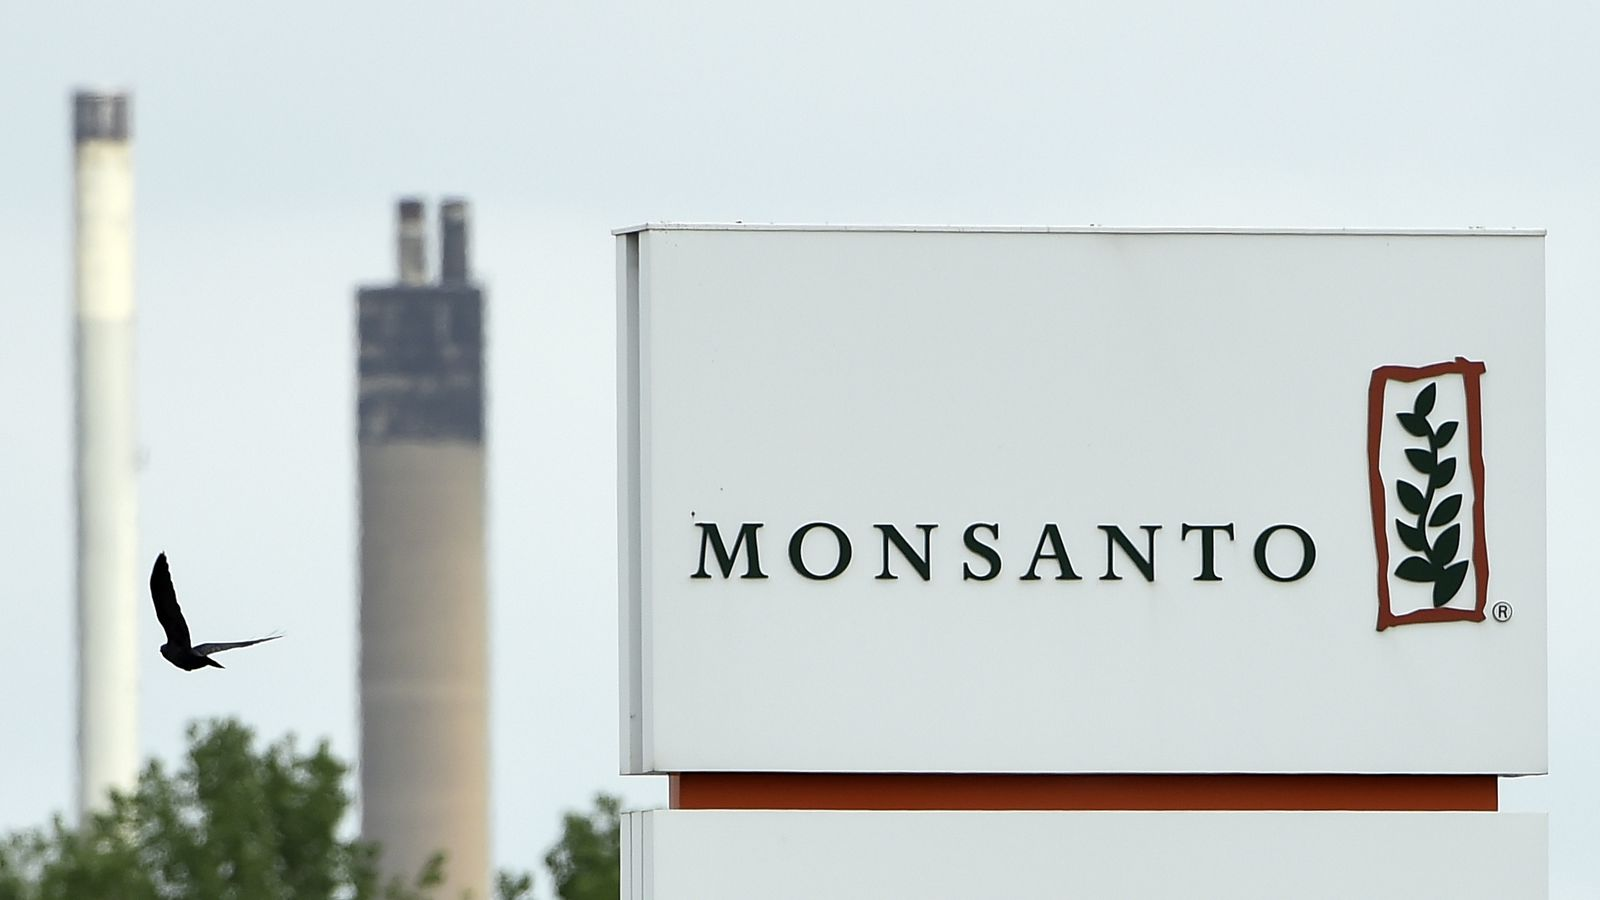 Why Bayer S Massive Deal To Buy Monsanto Is So Worrisome Vox